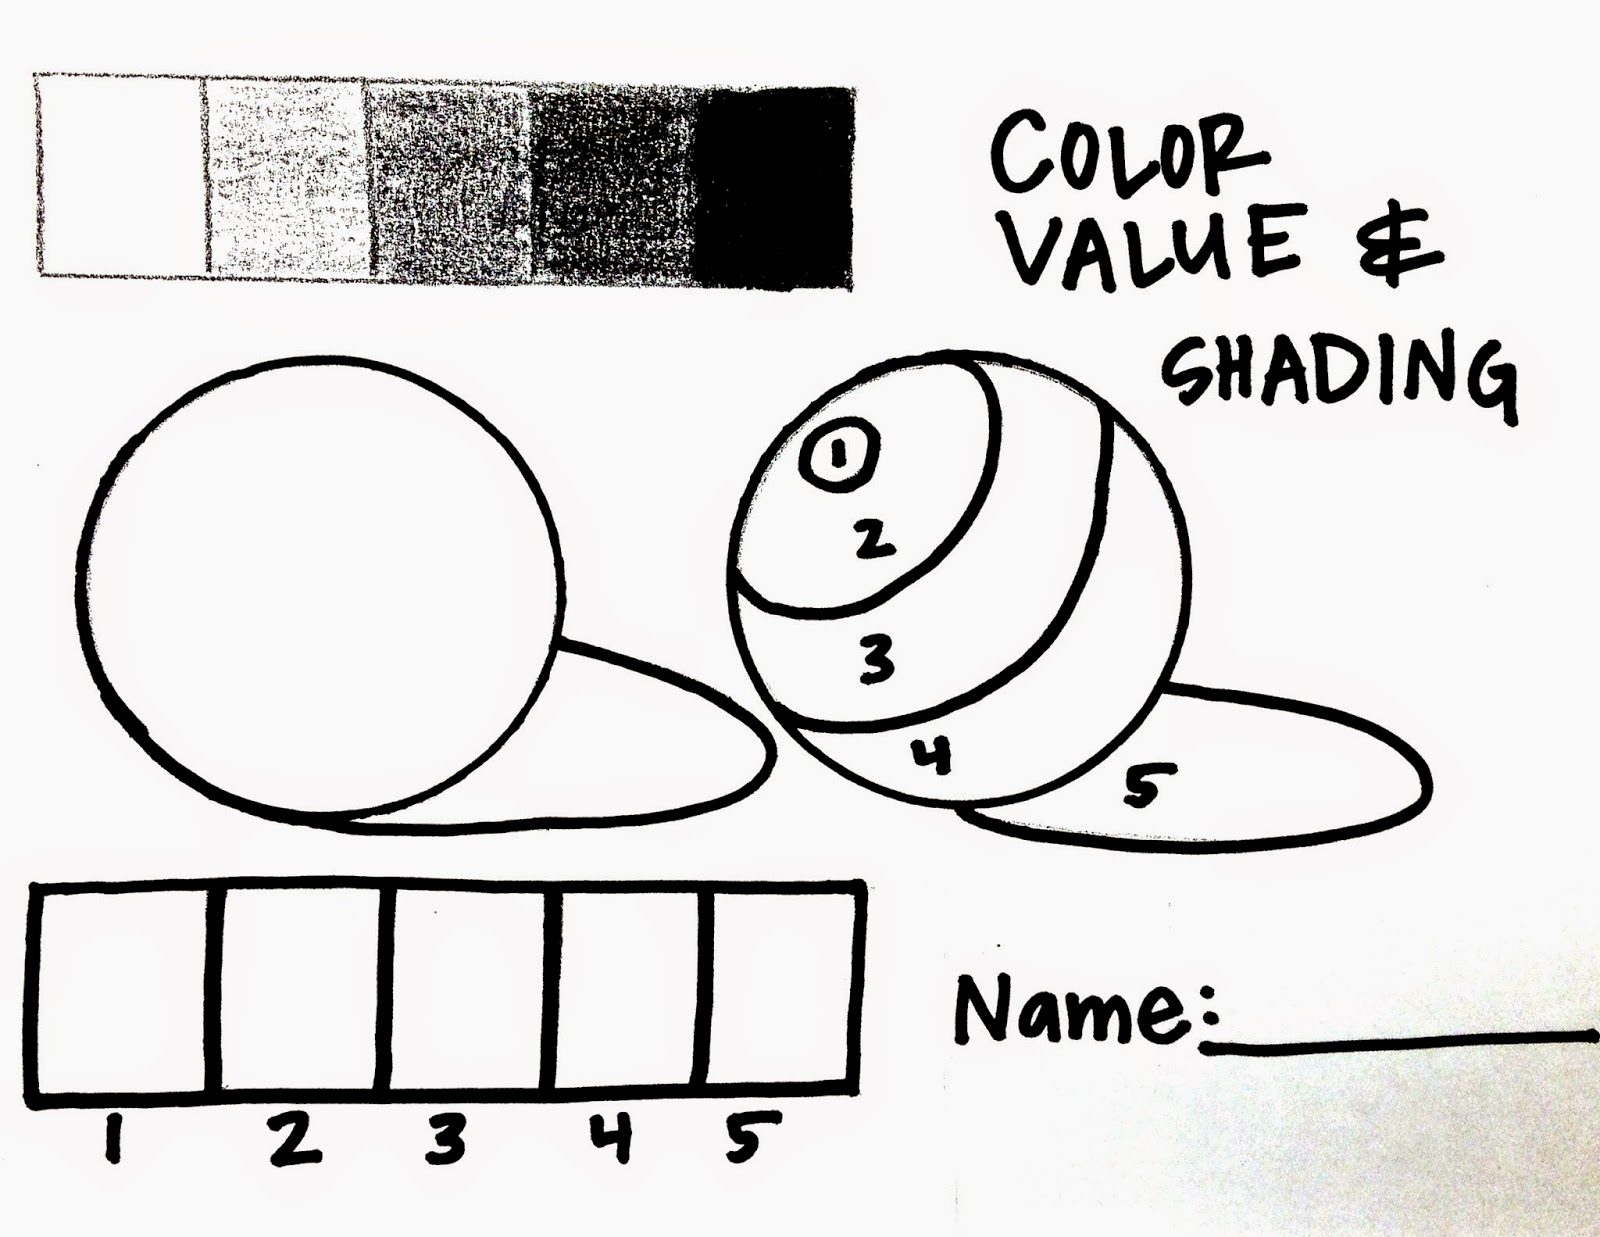 Shading Worksheet Activity